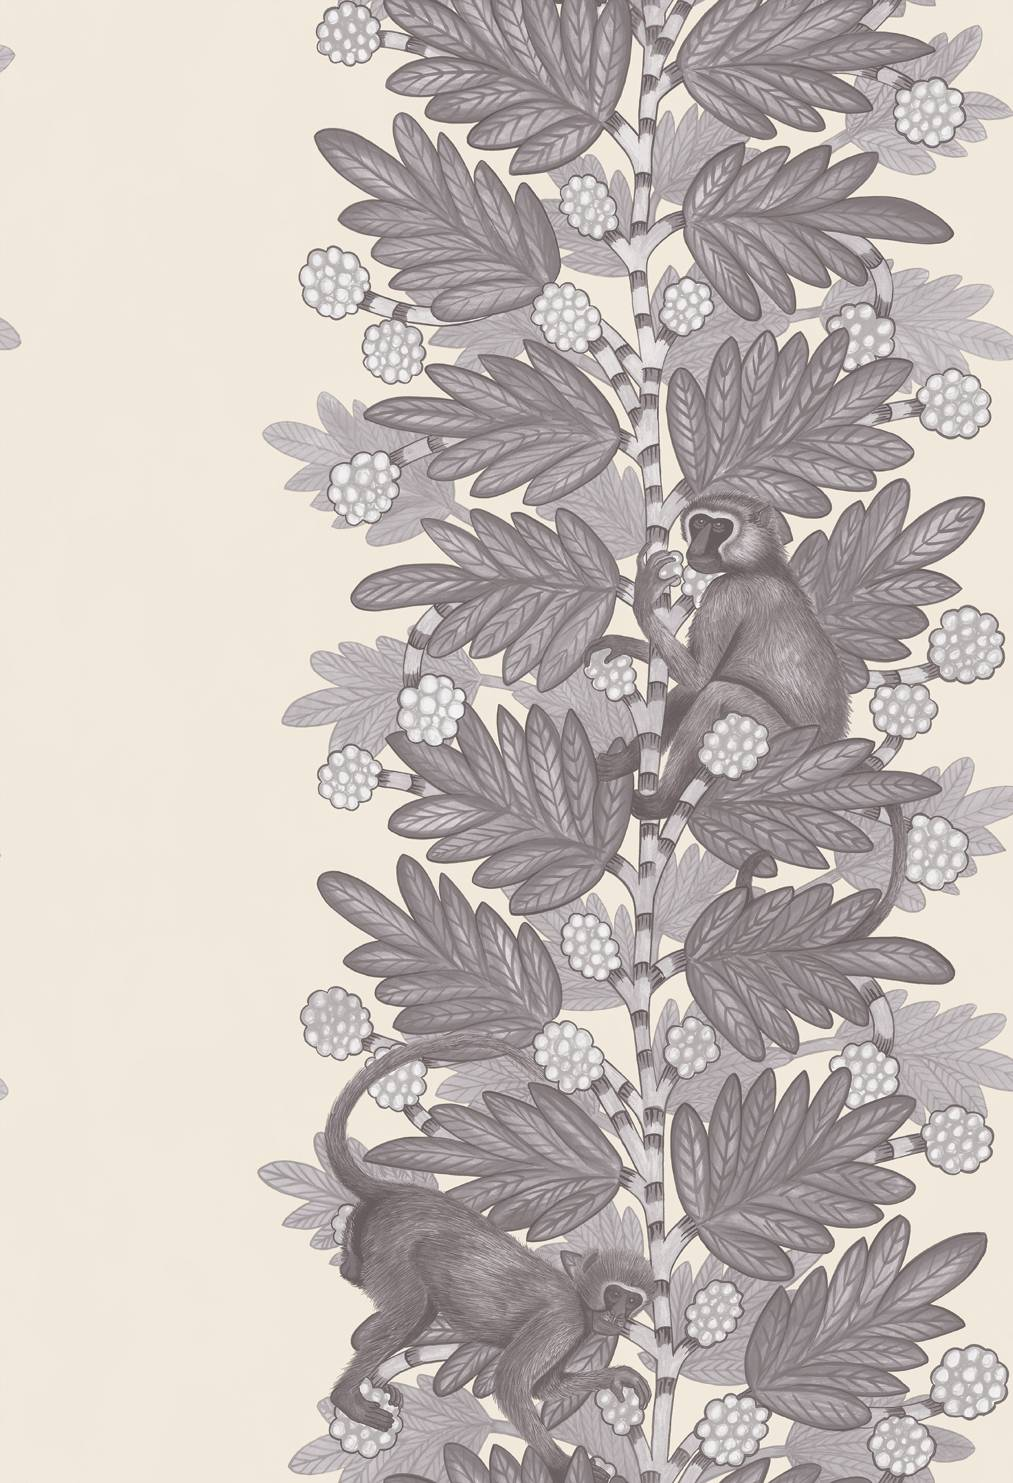 109-11053 Acacia- The Ardmore Collection- Cole & Son - 72dpi - RGB